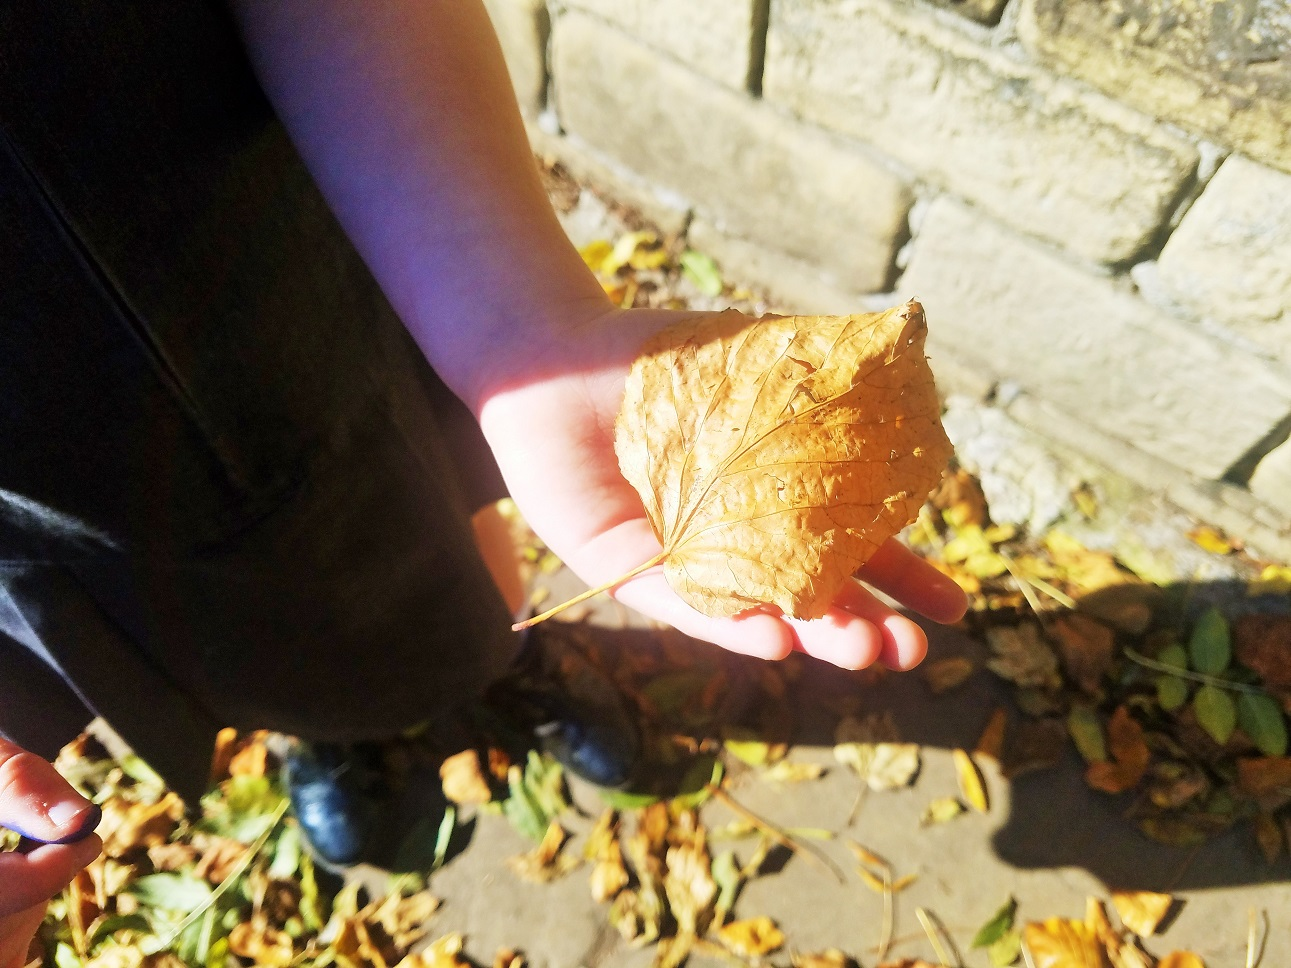 Self compassion and self love are essential when we've messed up parenting - child holding an autumn leaf